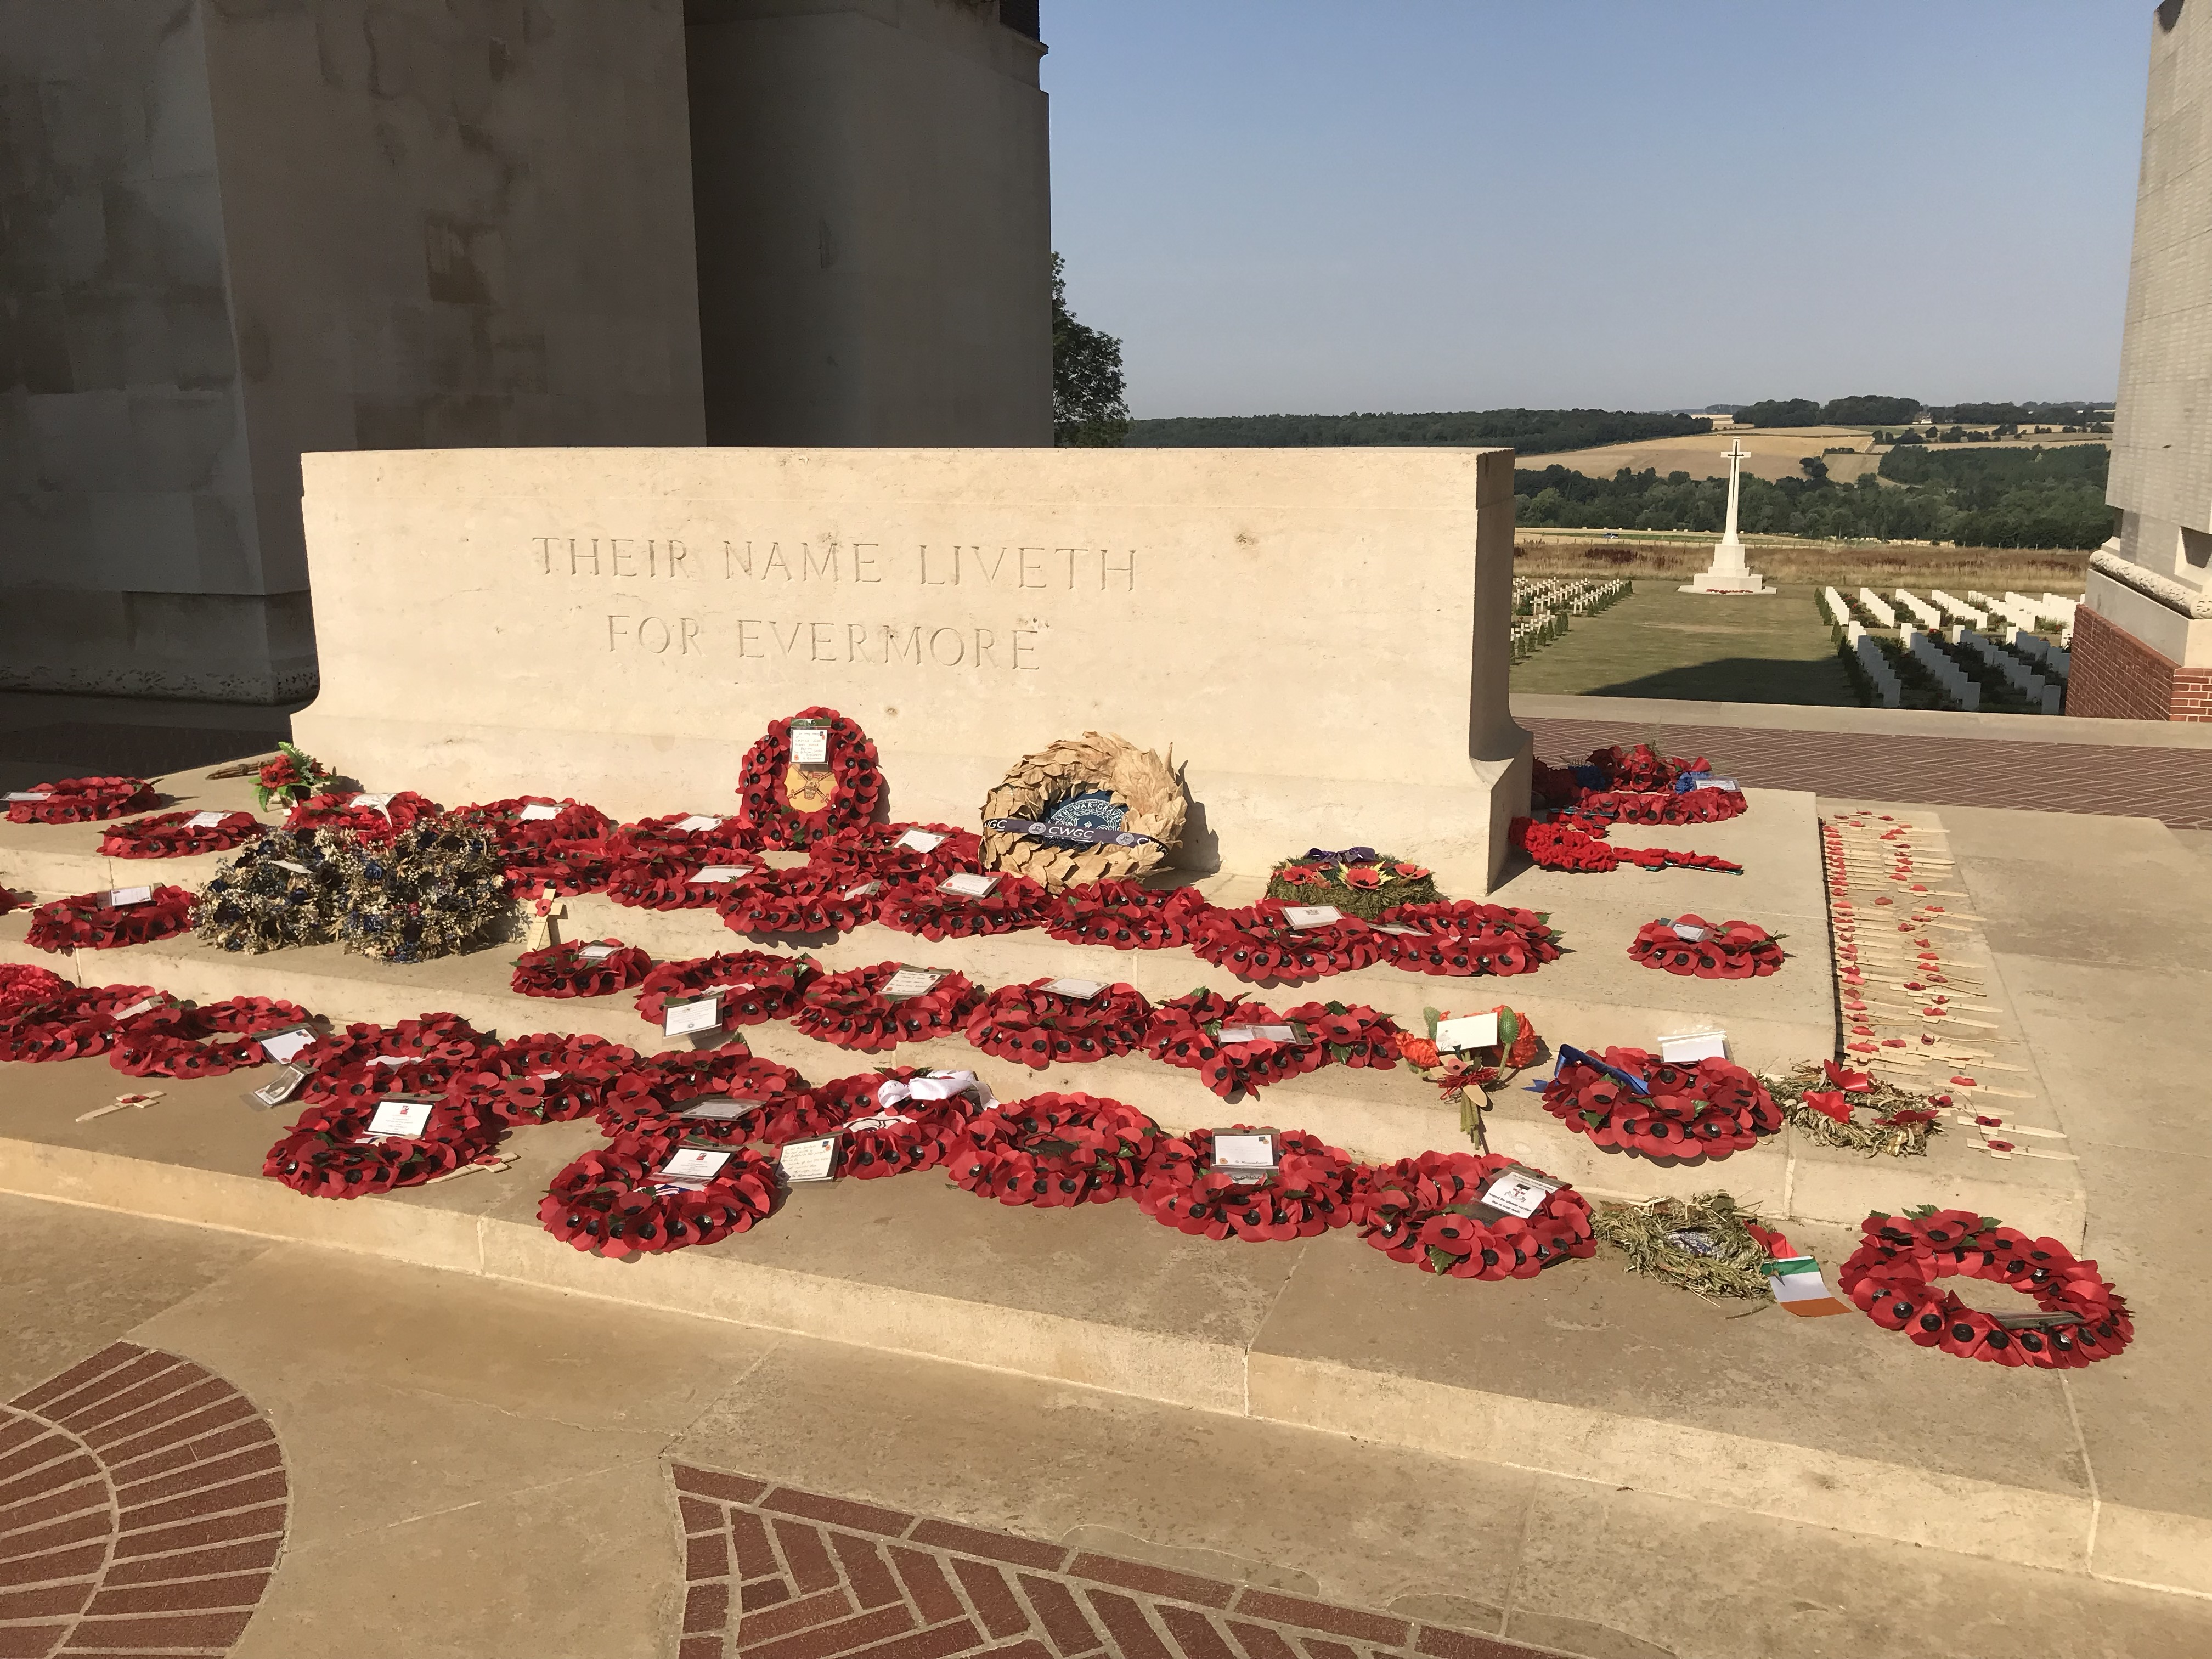 London to Paris Cycle Challenge 2018 - Their name liveth for evermore